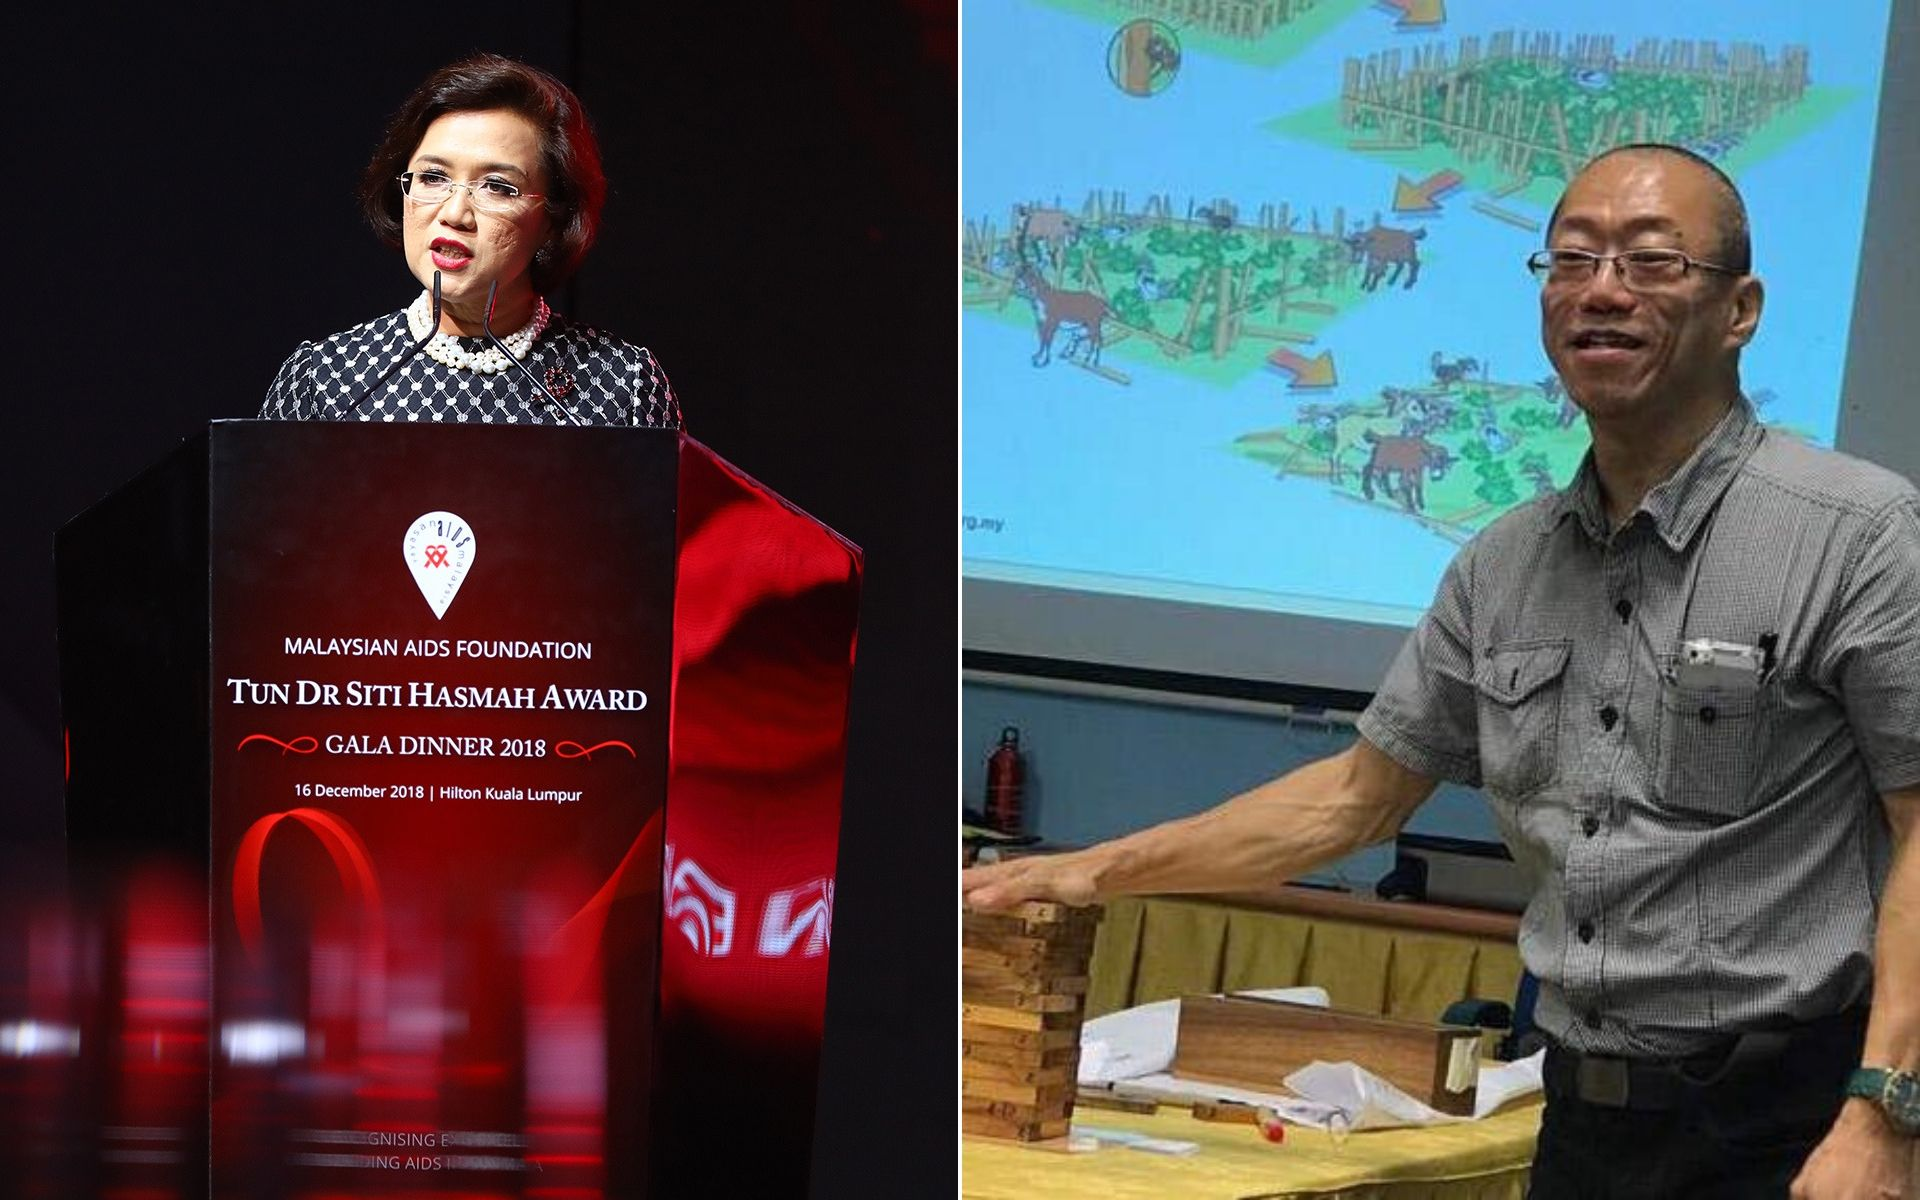 2 Notable Humanitarians, On The How, Where & Why We Are Closer To Ending AIDS